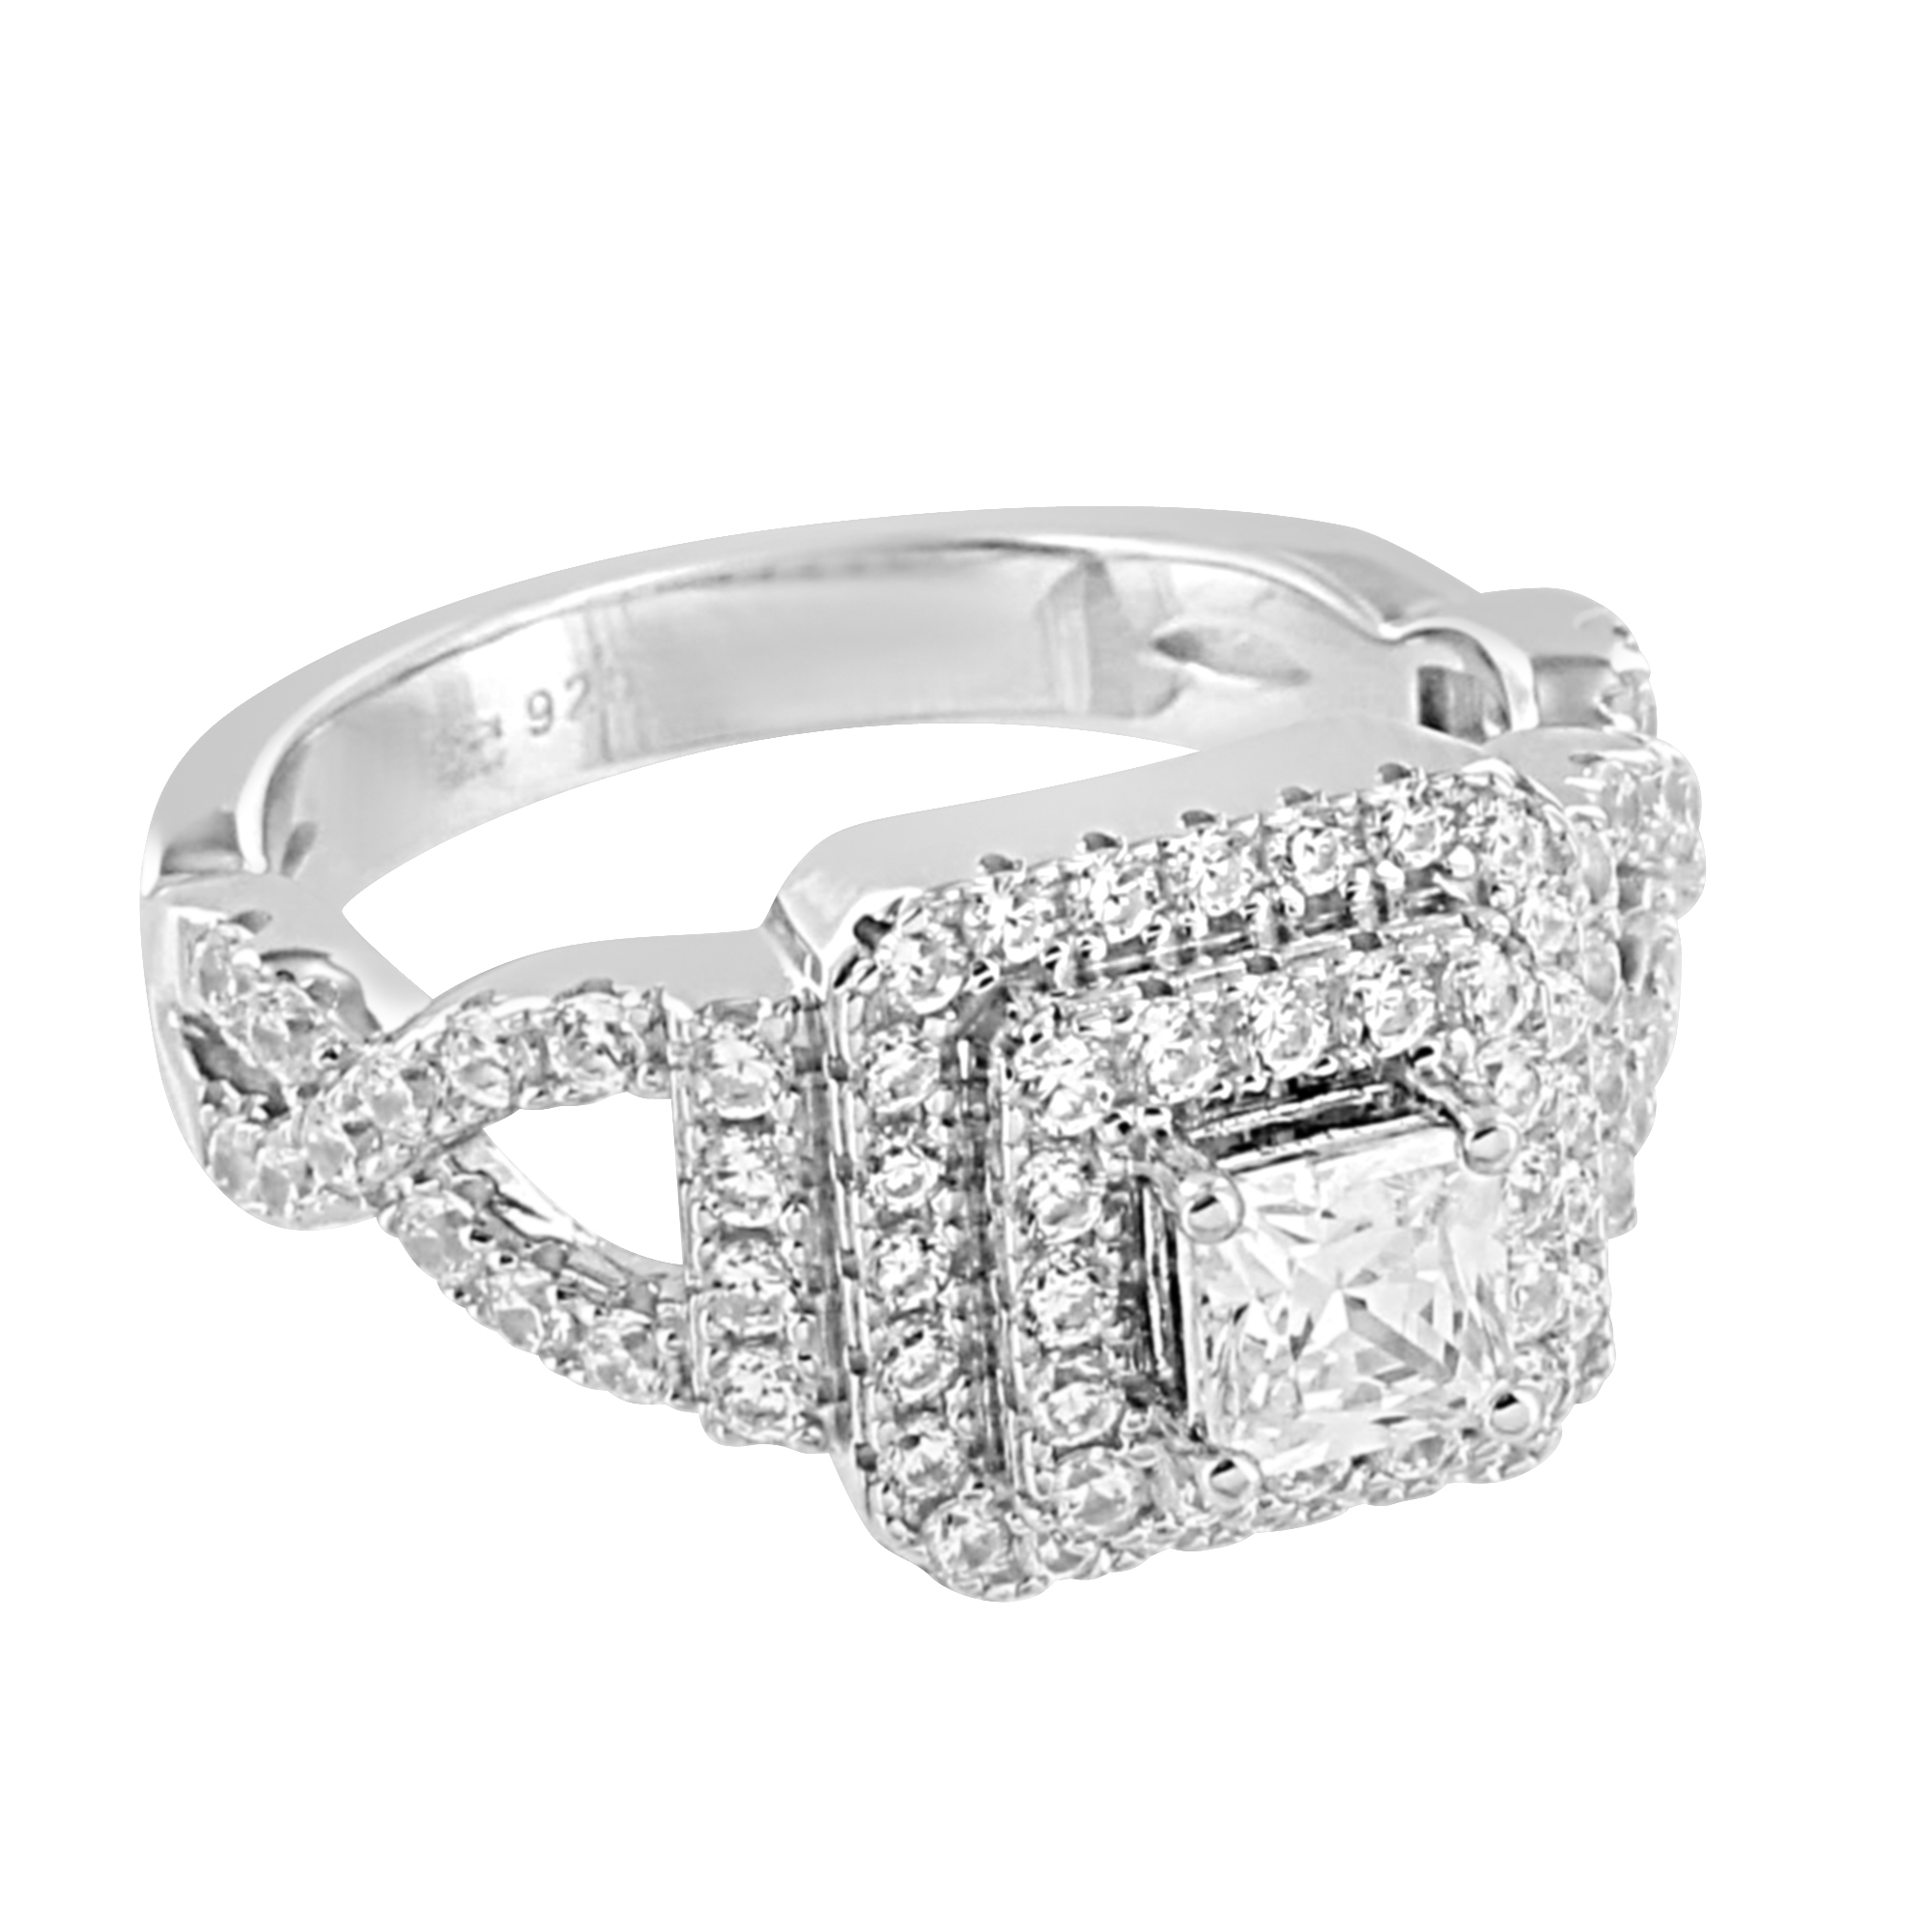 Princess Cut Solitaire Wedding Ring Engagement 925 Sterling Silver Cubic Zirconia